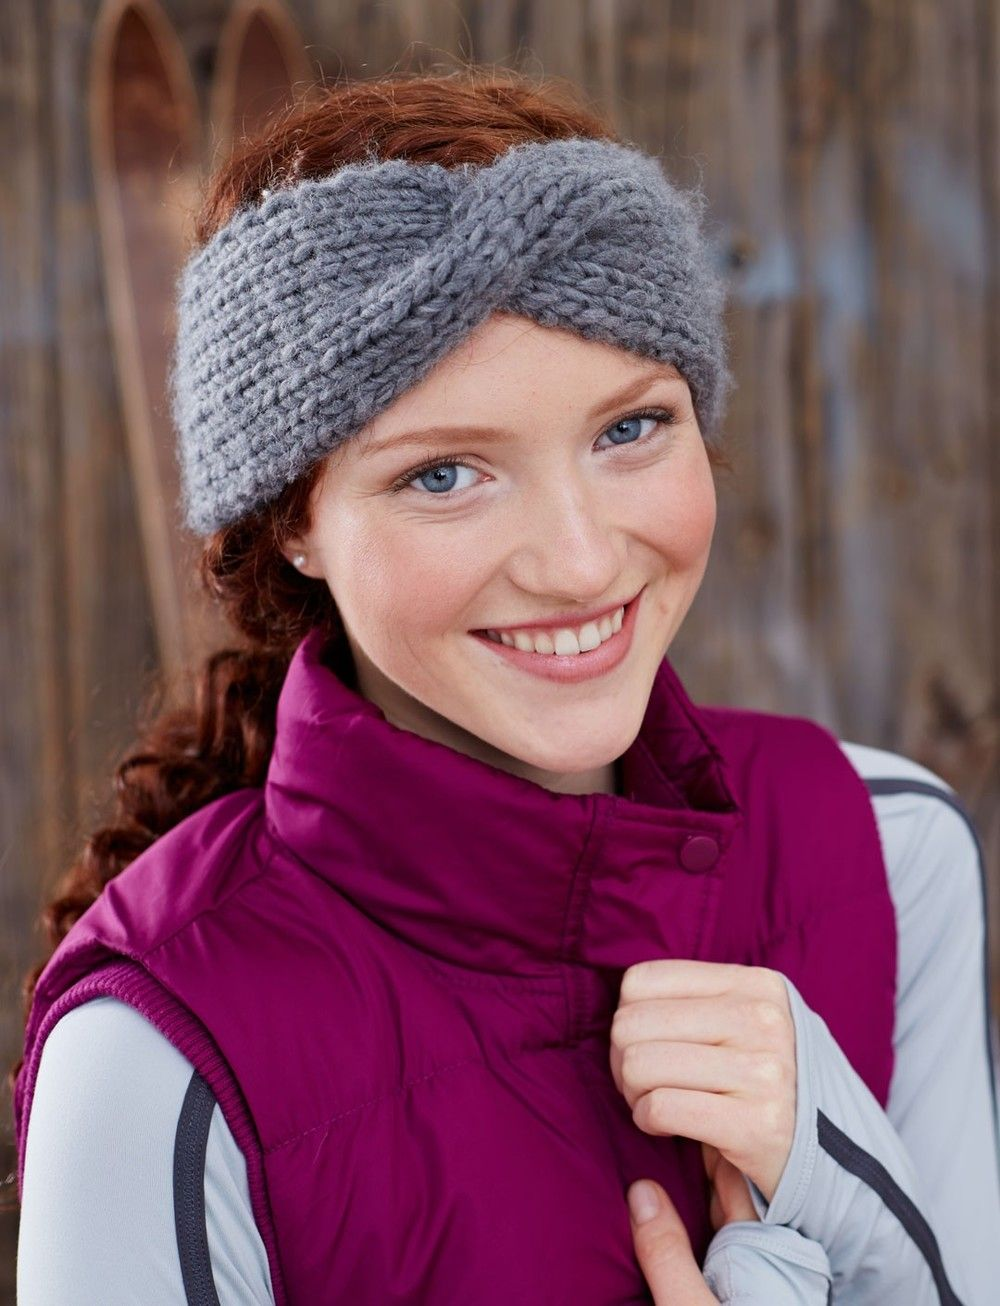 Twisted sister headband beginner knitting knit headband pattern learning how to knit a headband is as easy as with the twisted sister headband perfect for beginner knitters this easy knit headband pattern mainly uses bankloansurffo Images